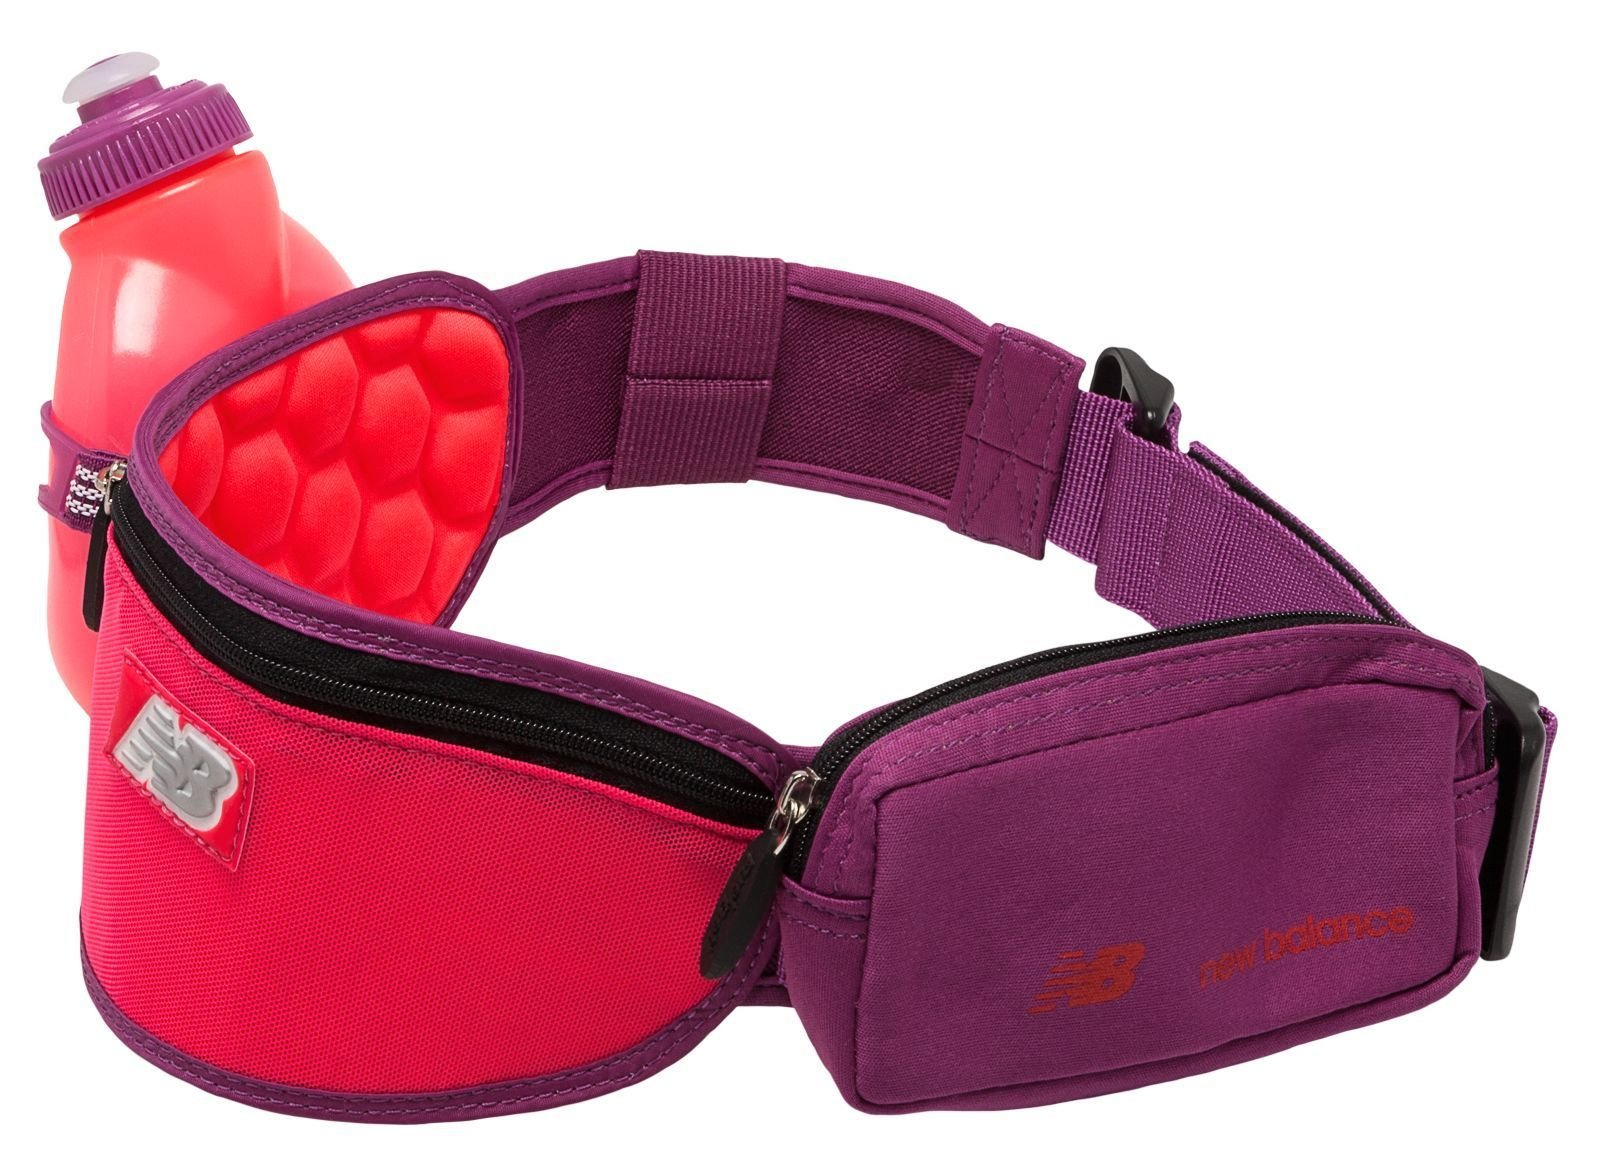 New Balance Fitness Fuel Belt Helium H10 1 Bottle Hydration Belt Waist Pack (Crimson/Purple) by New Balance